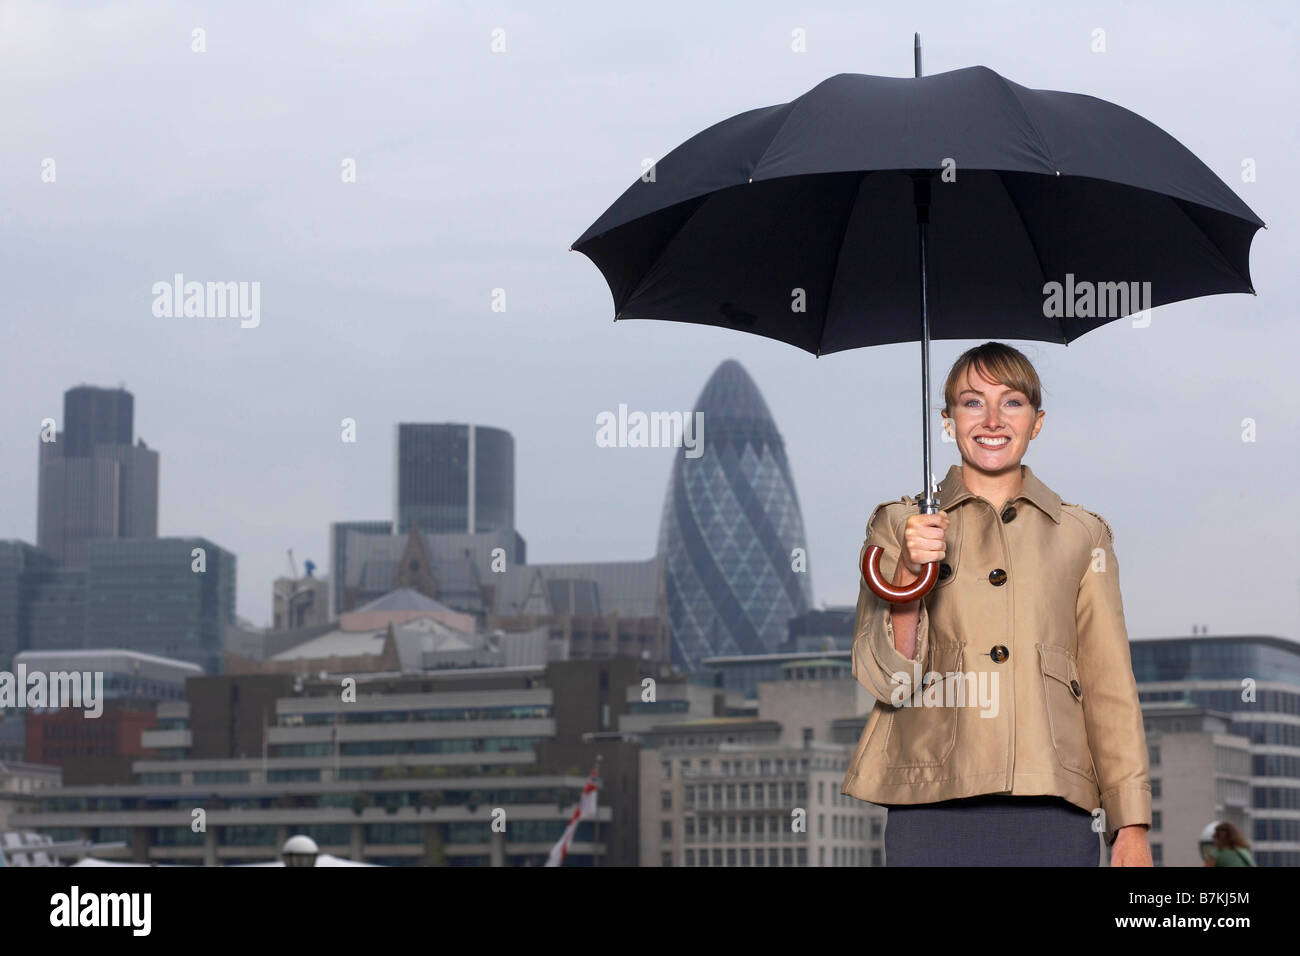 Woman with umbrella city scape - Stock Image